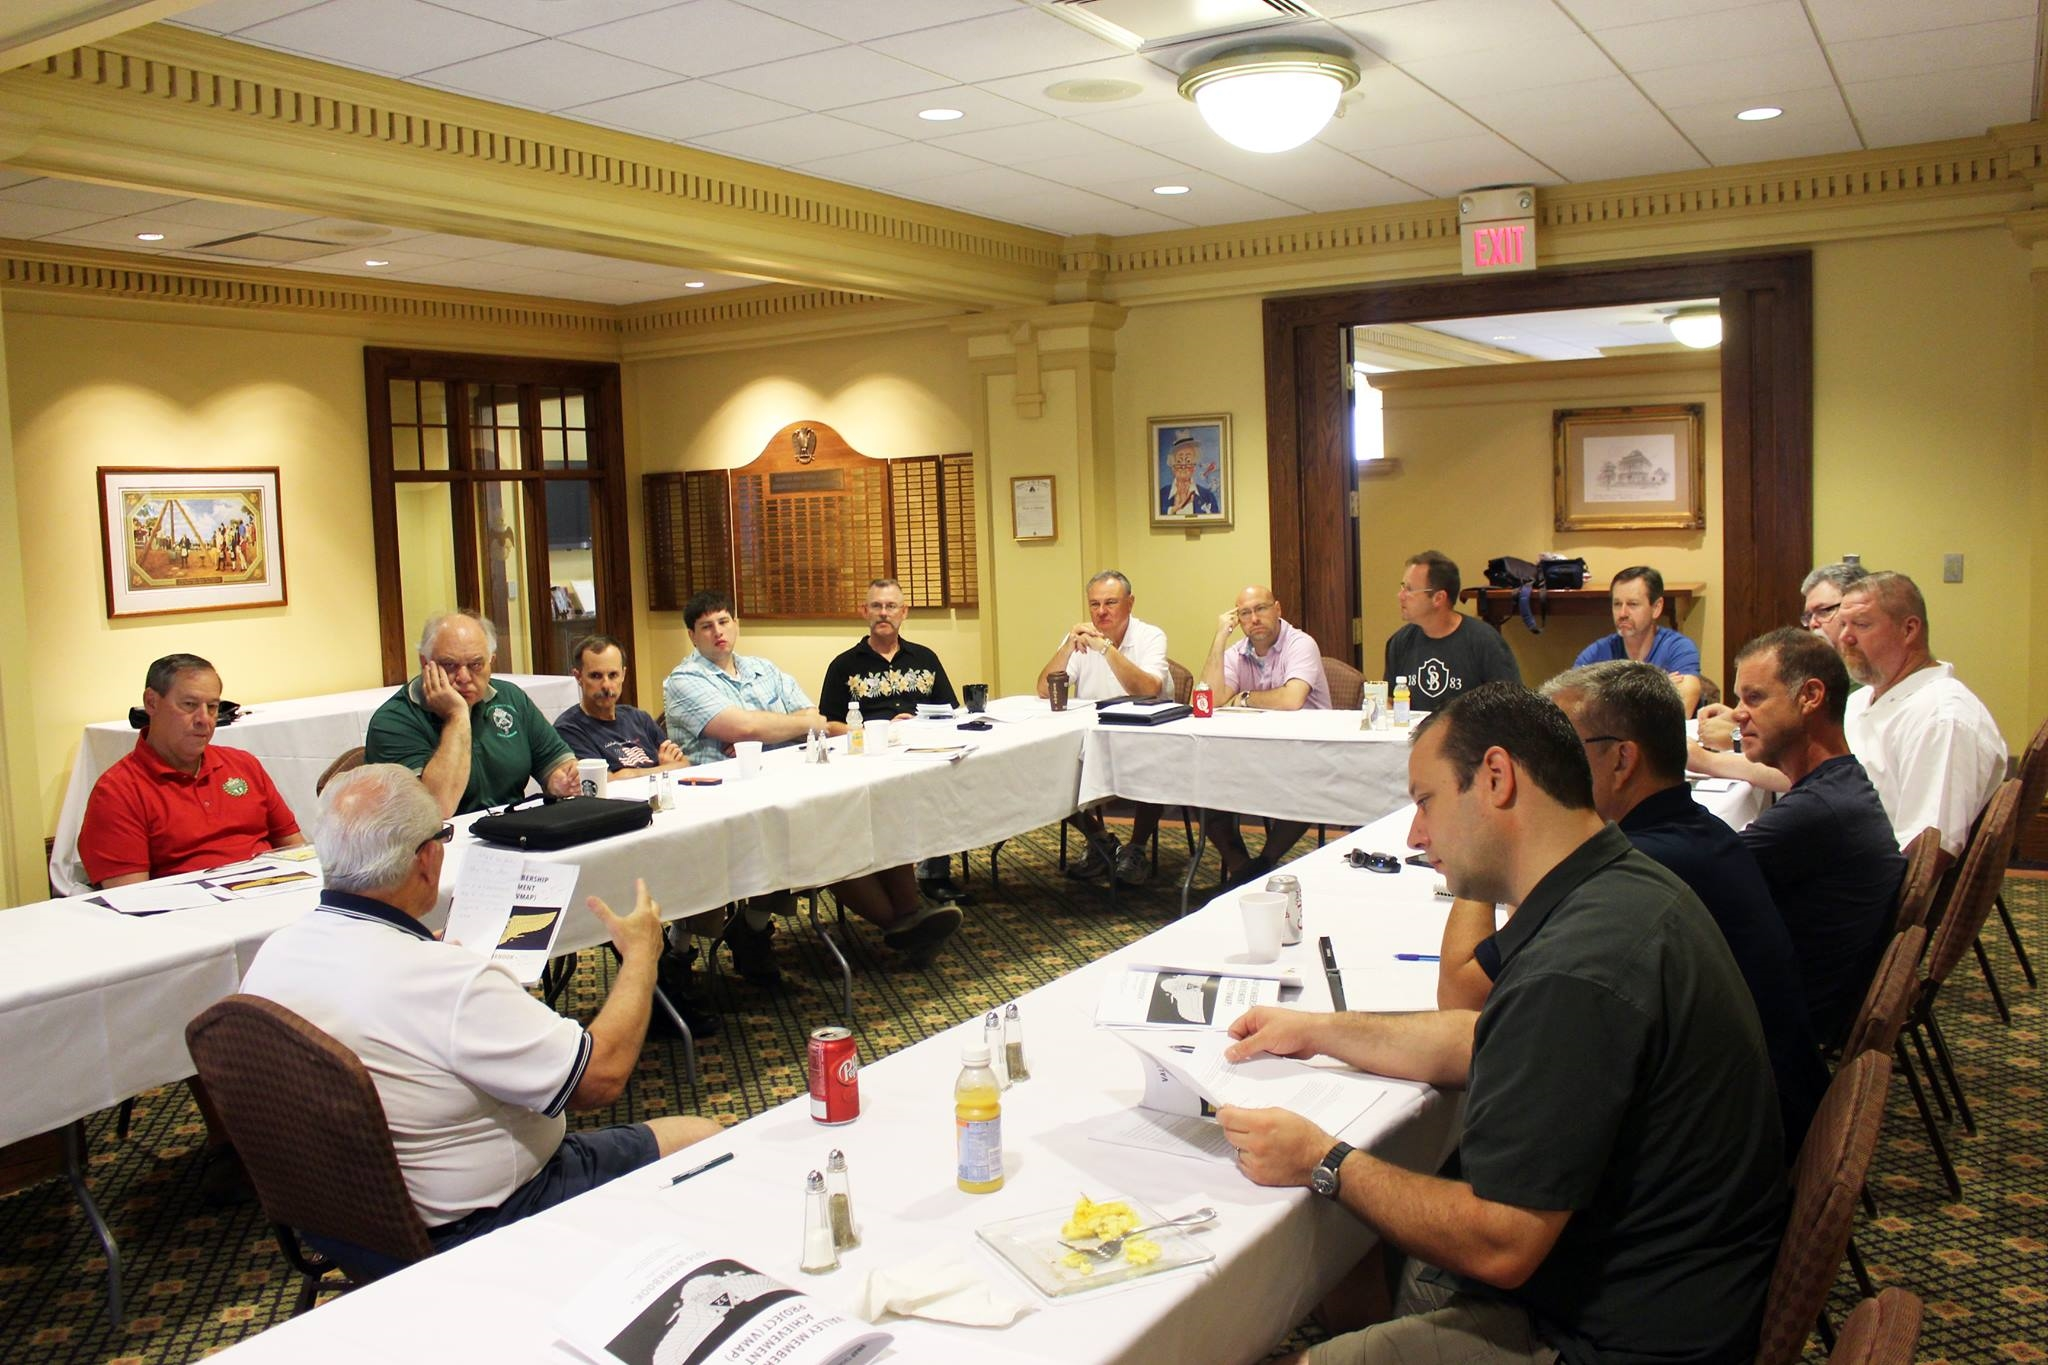 Members of the Valley of Omaha Scottish Rite VMAP committee meeting to discuss goals for the committee.